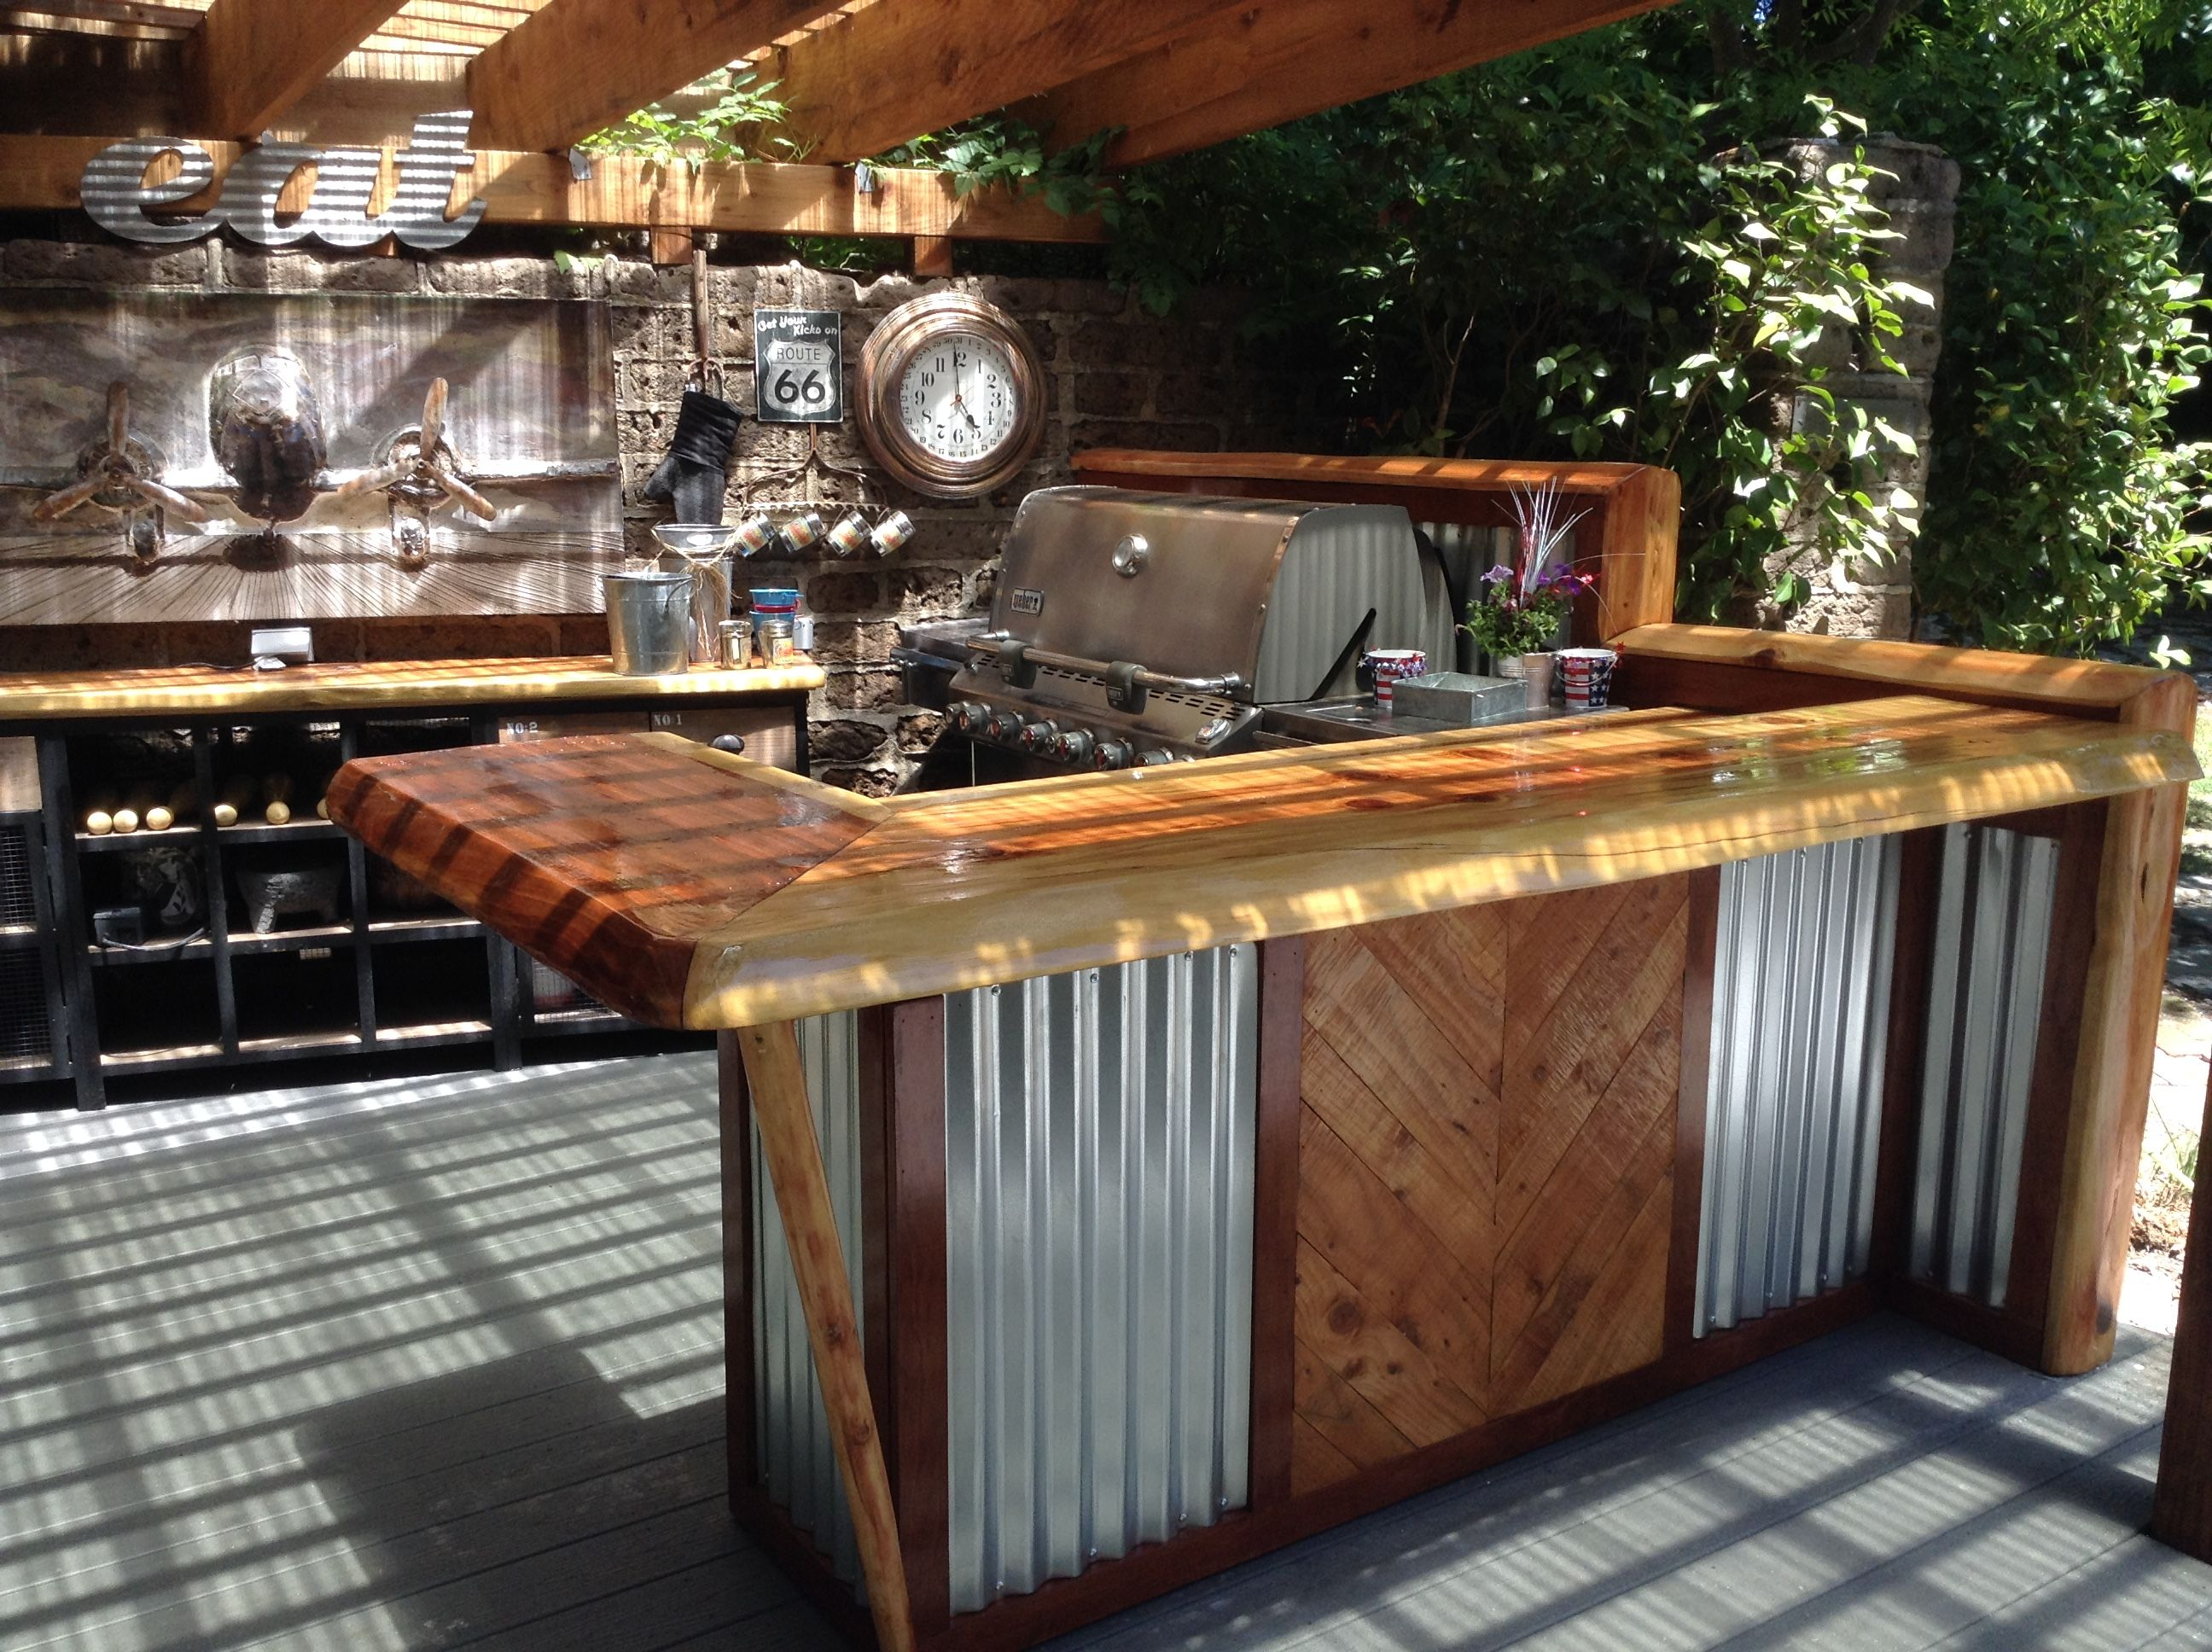 Rustic outdoor kitchen and bar. | Outdoor kitchen ideas ...